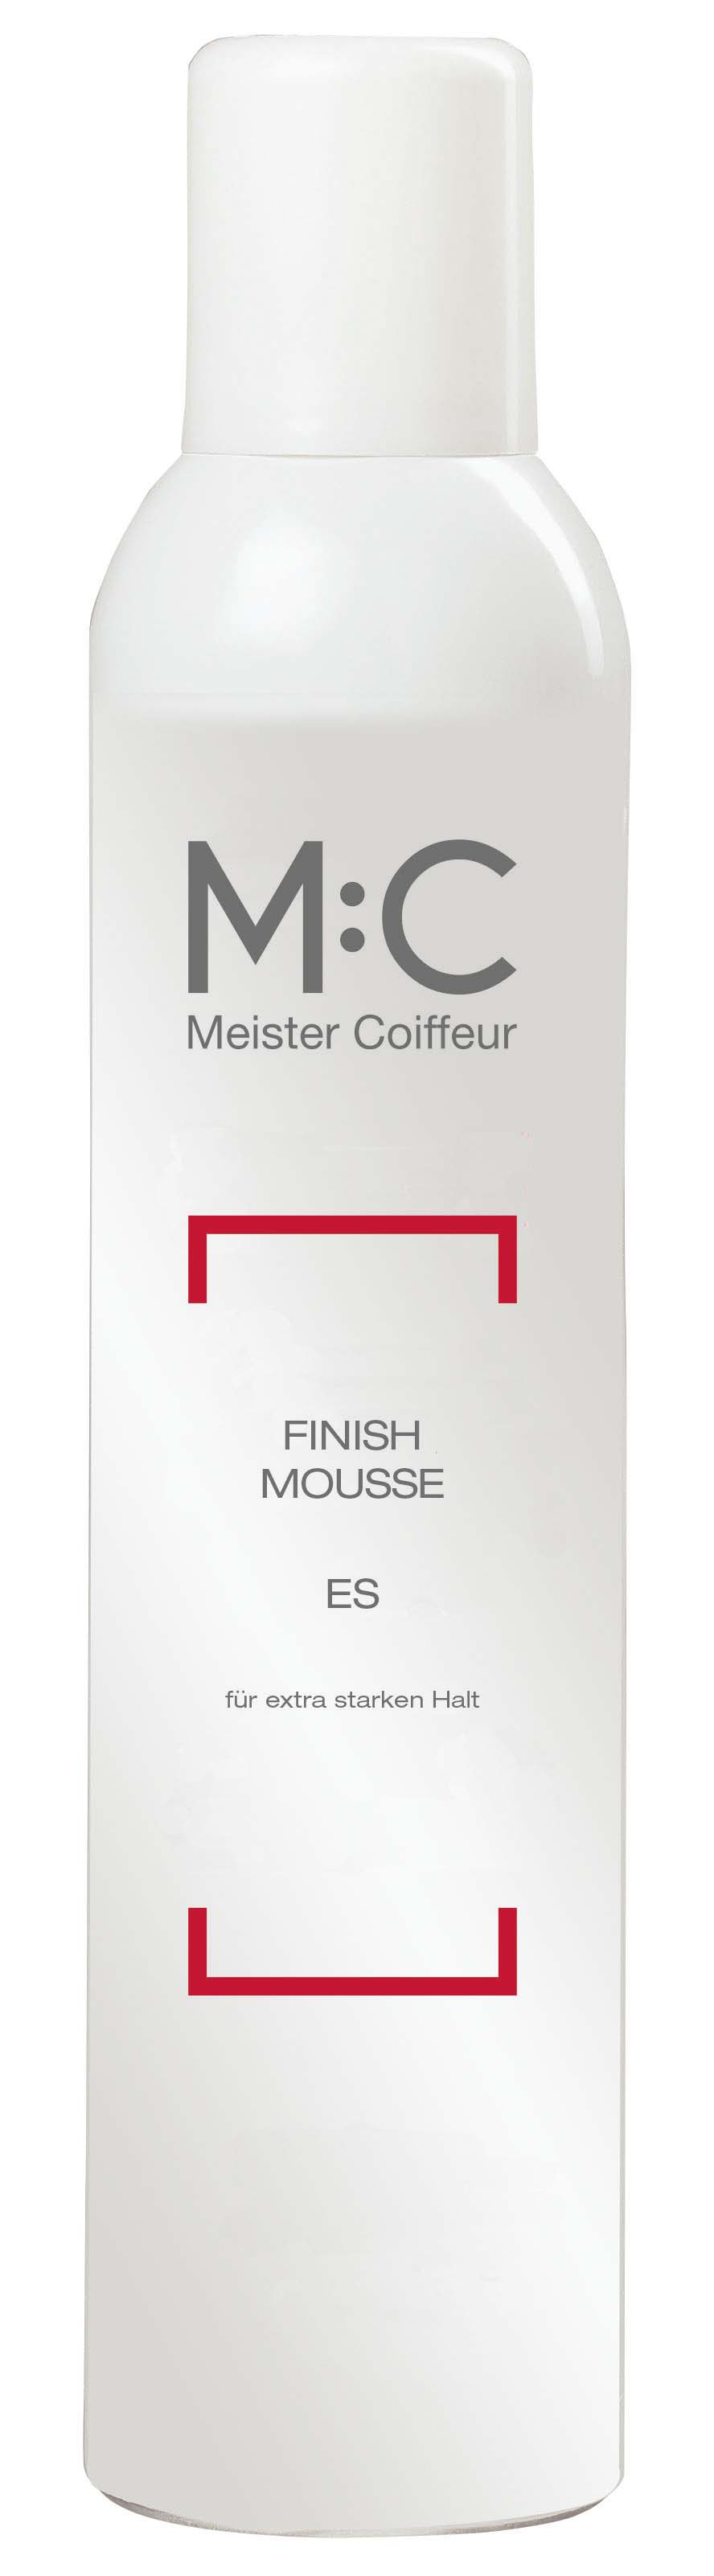 M:C Finish Mousse ES